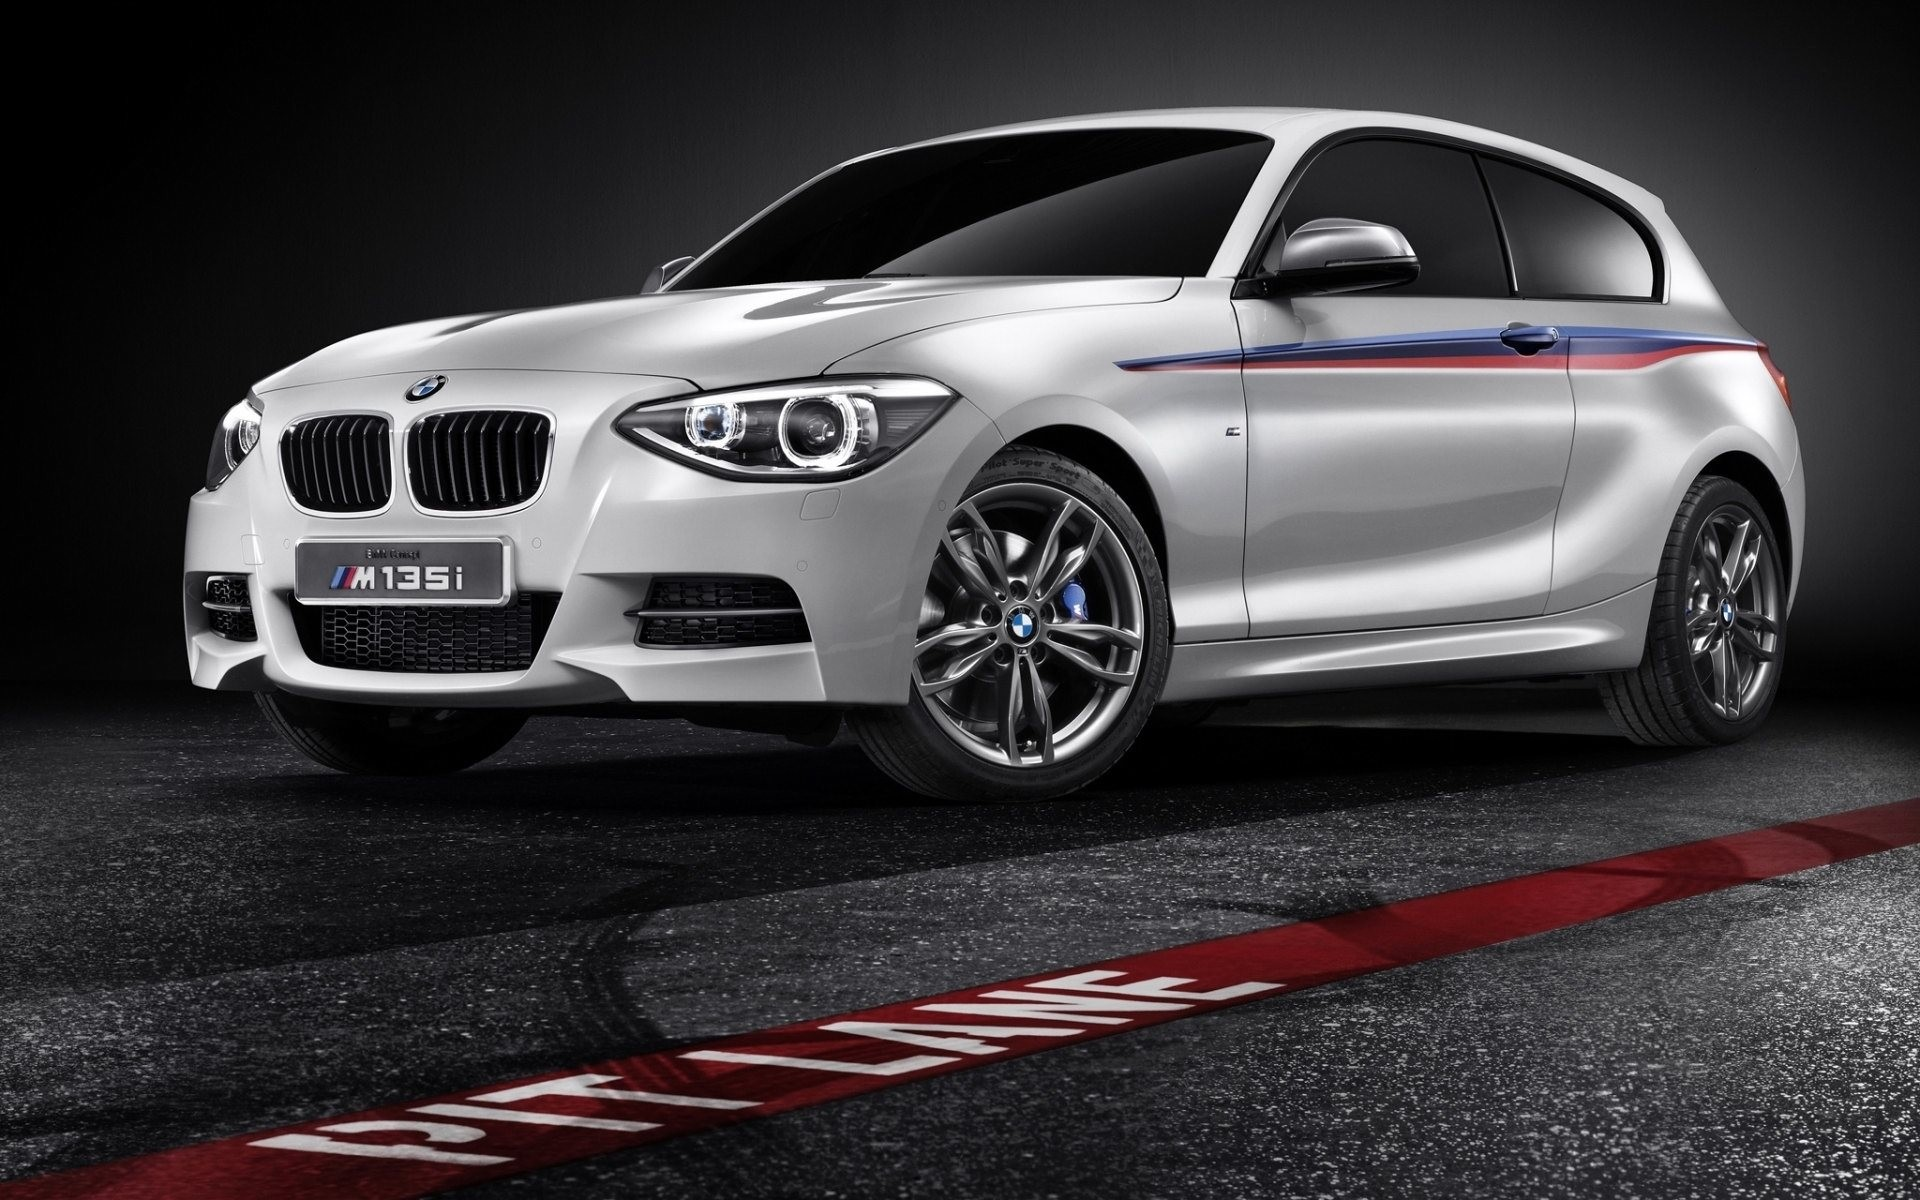 Res: 1920x1200, BMW M135i Wallpaper Background